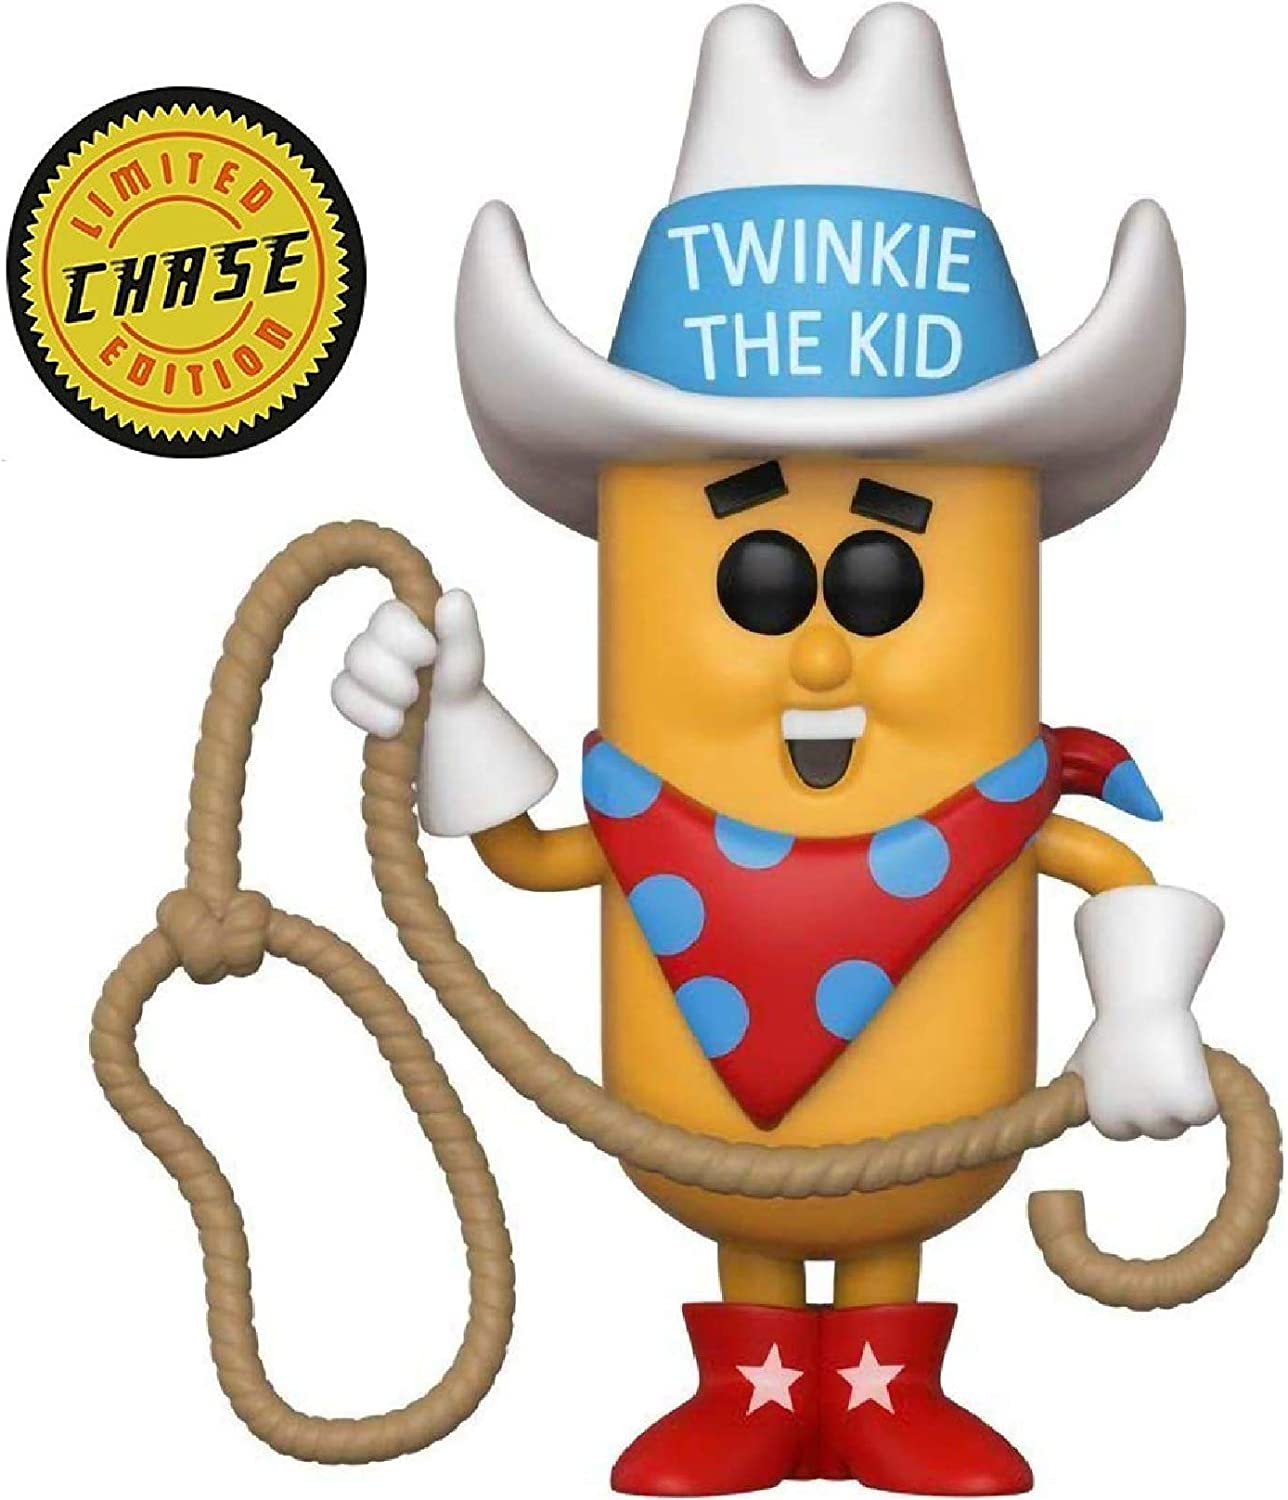 Funko Pop! Ad Icons: Hostess - Twinkie The Kid Limited Edition Chase Vinyl Figure (Includes Pop Box Protector Case)